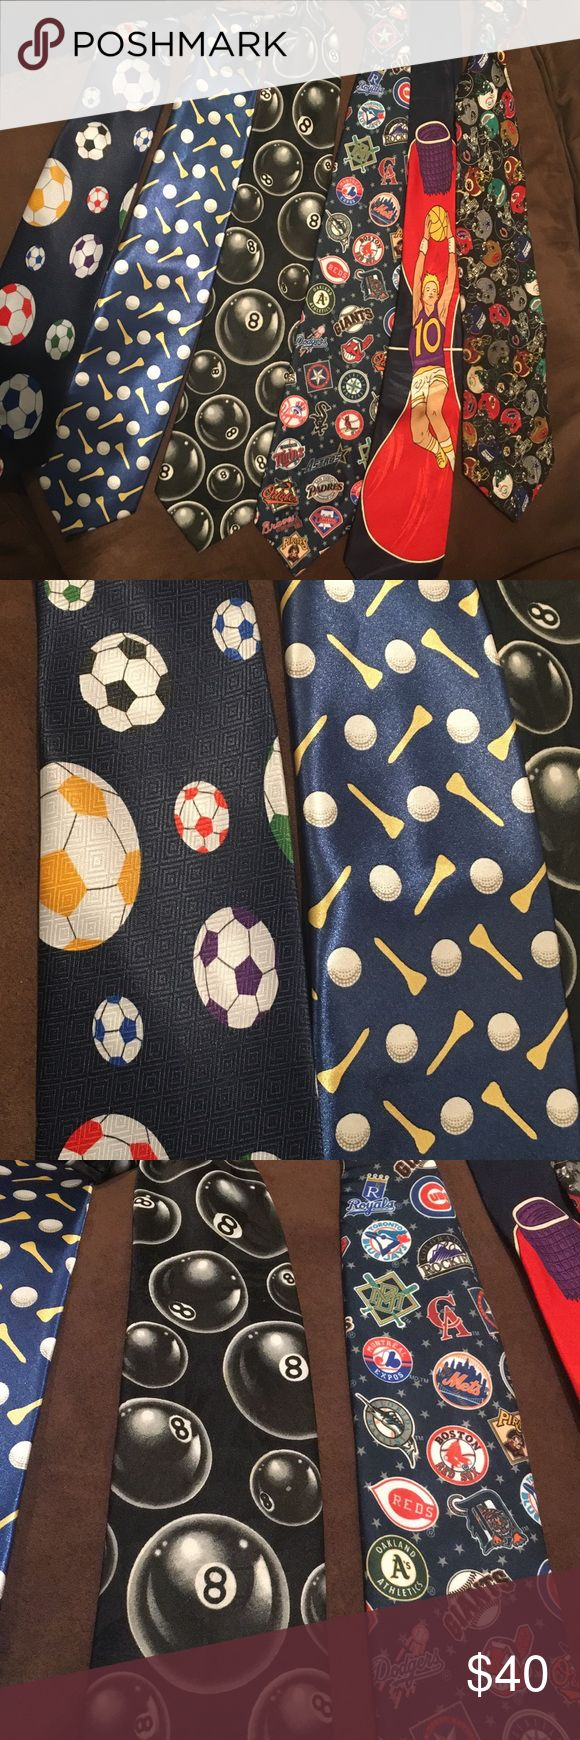 Bundle of ties for the sports buff! Bundle of six ties for the all-sports lover!! Or gift a few ties away! This is a fantastic deal!   Soccer tie - designed by A. Rogers Golf tie - shiny satiny feel Billiards pool tie - made by Addiction  Major League Baseball tie - made by Surrey (1995) Basketball tie - made by Enigma (handmade) National Football League tie - made by NFL Accessories Ties